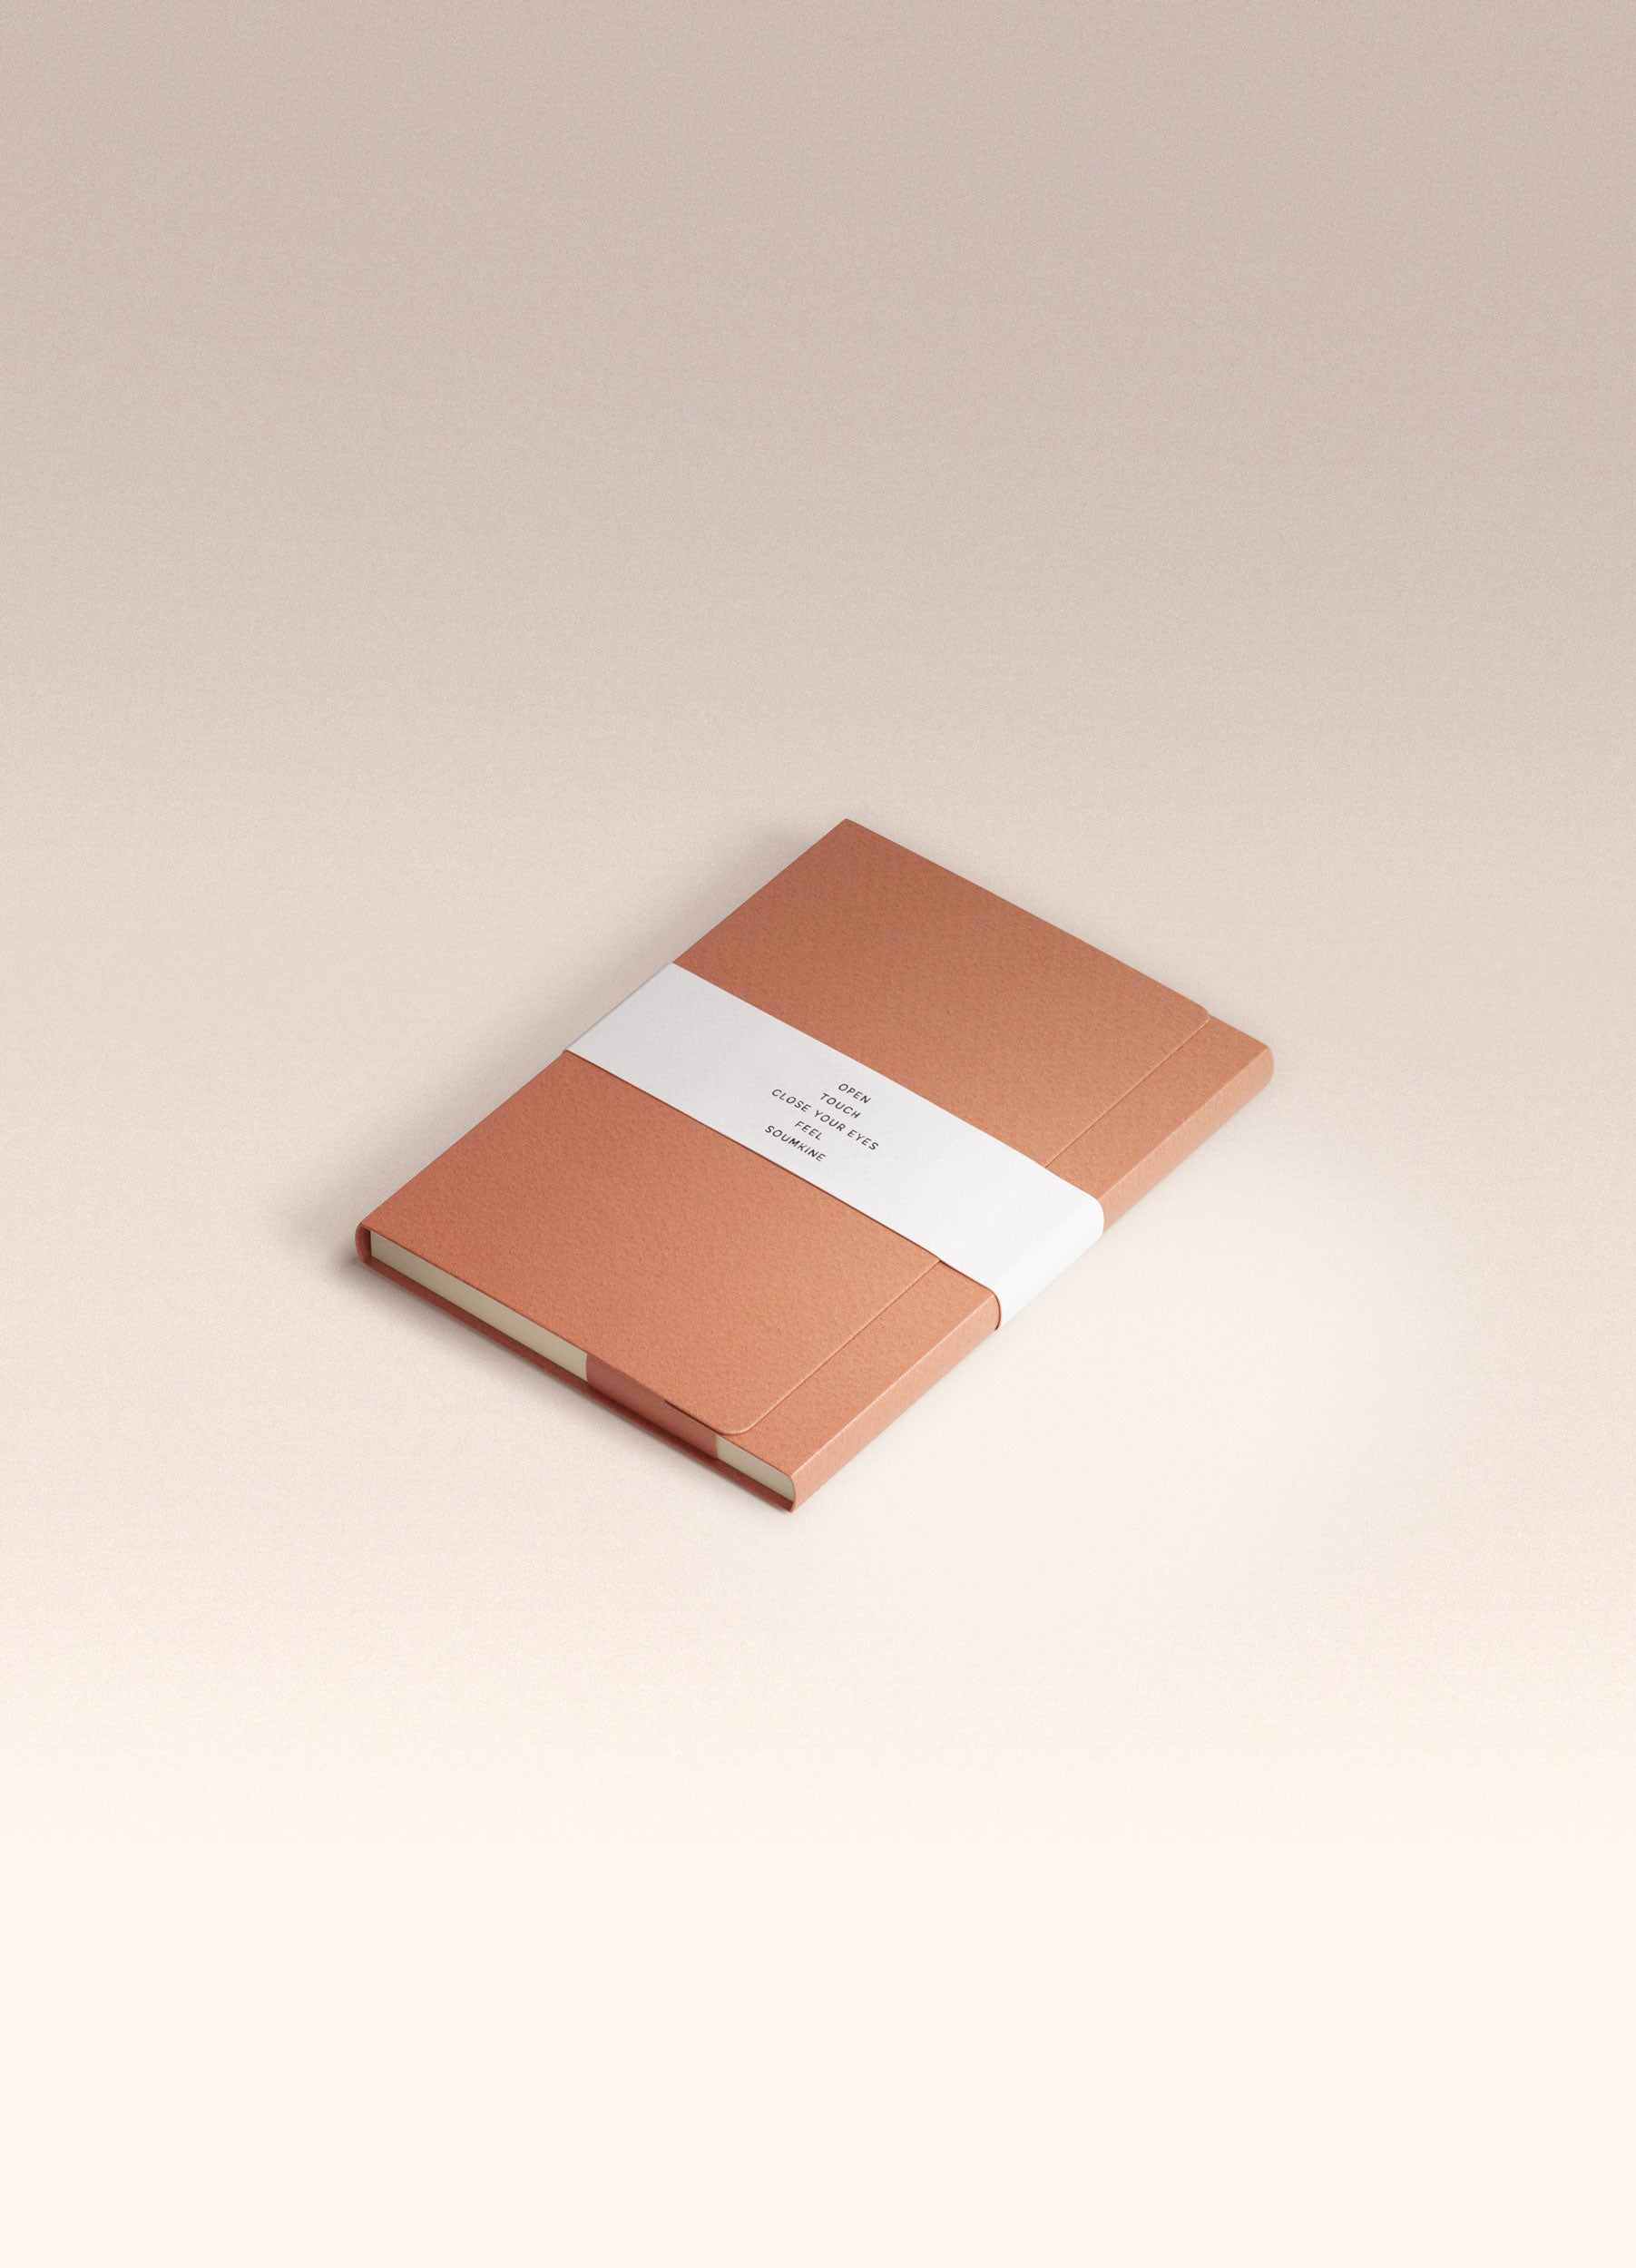 N.108 (RULED) Notebook. A6 size